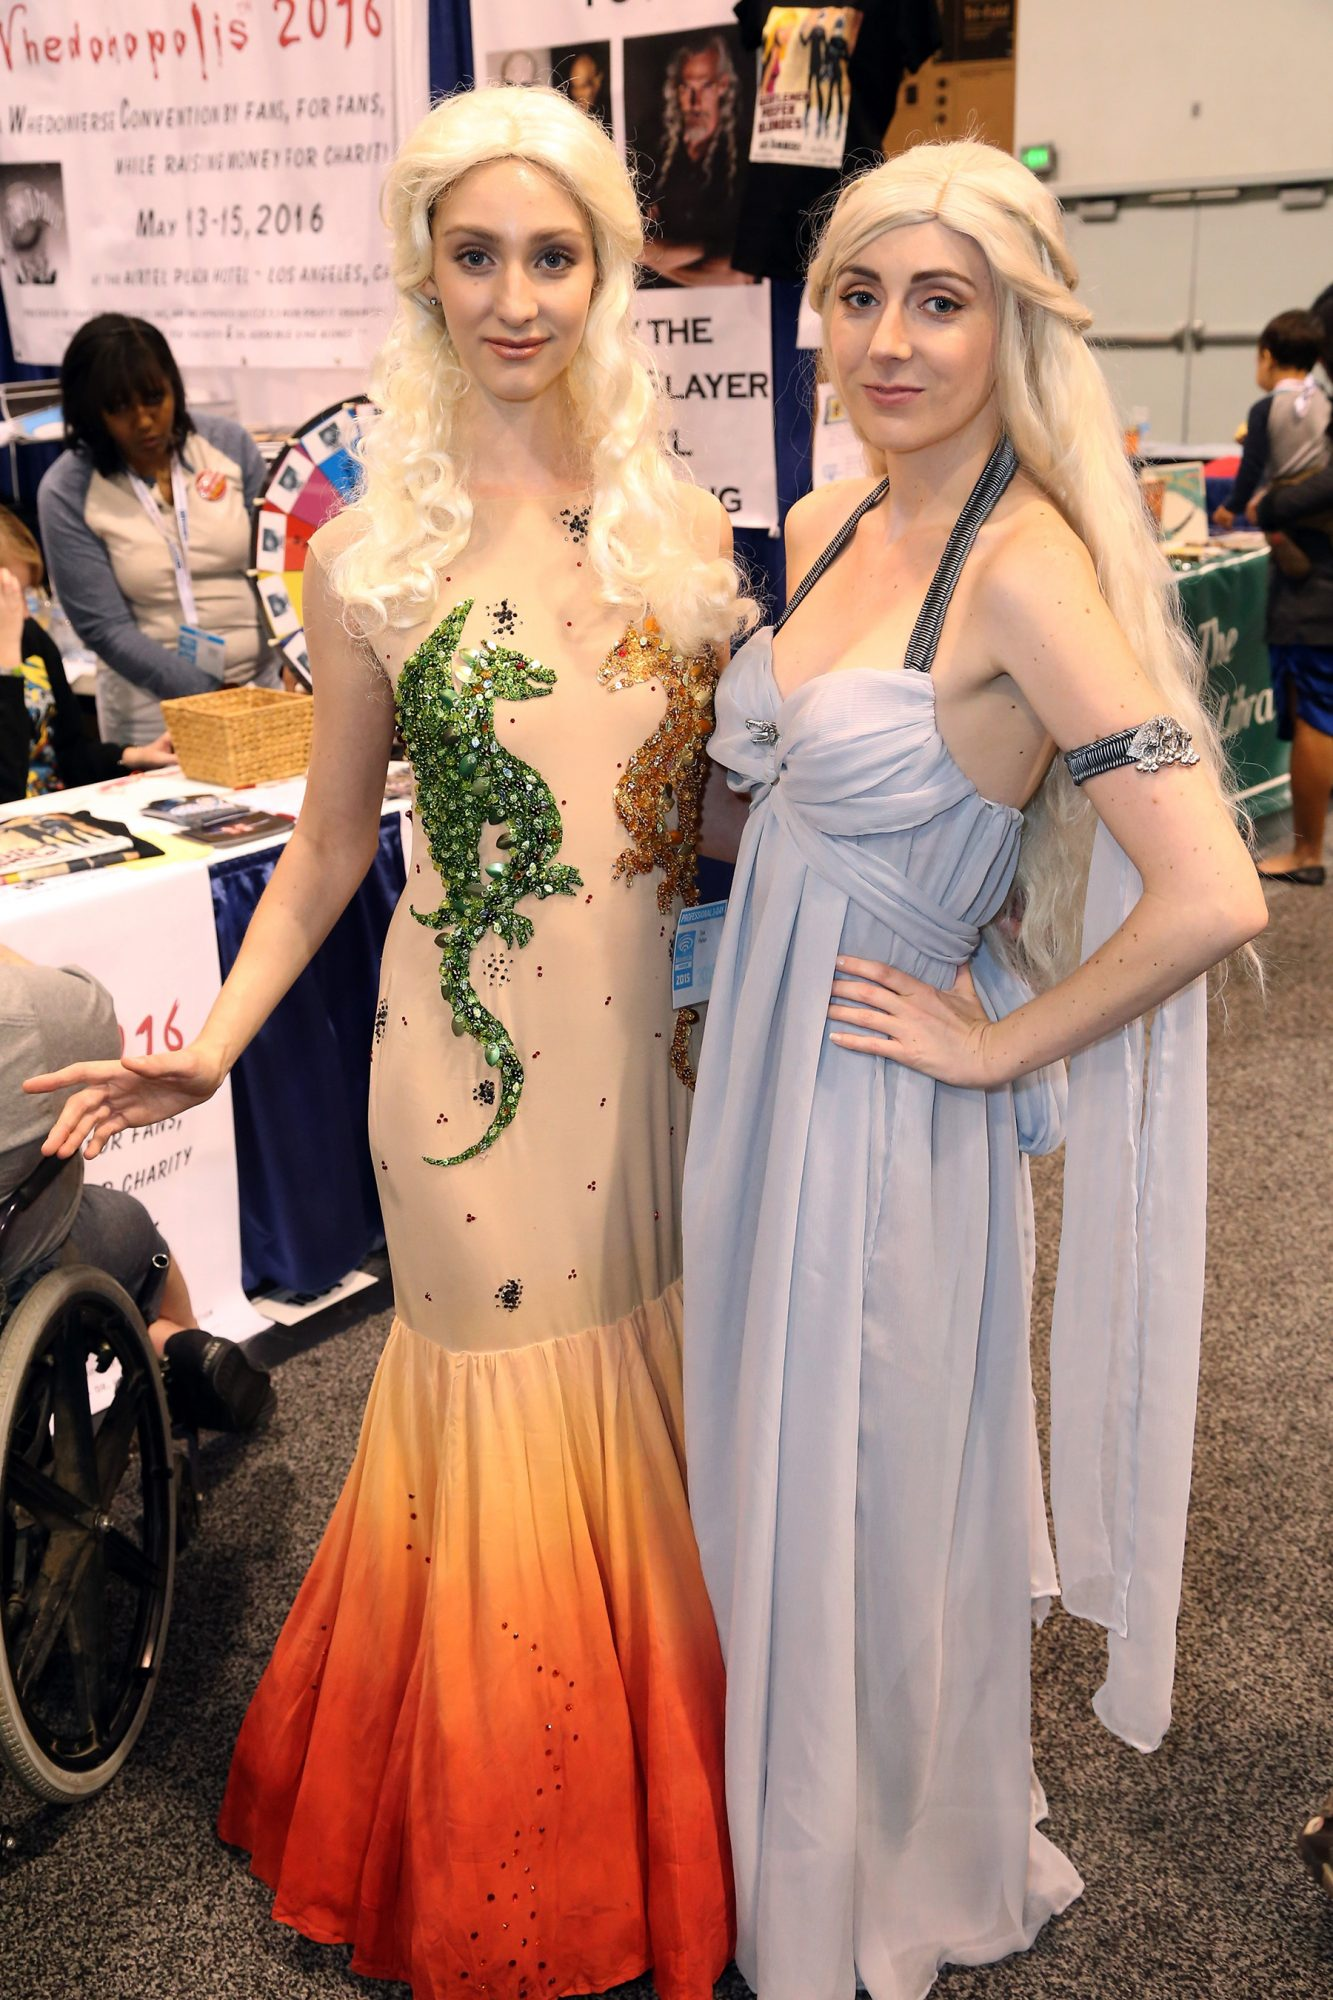 Daenerys Targaryen Cosplayers at WonderCon 2015